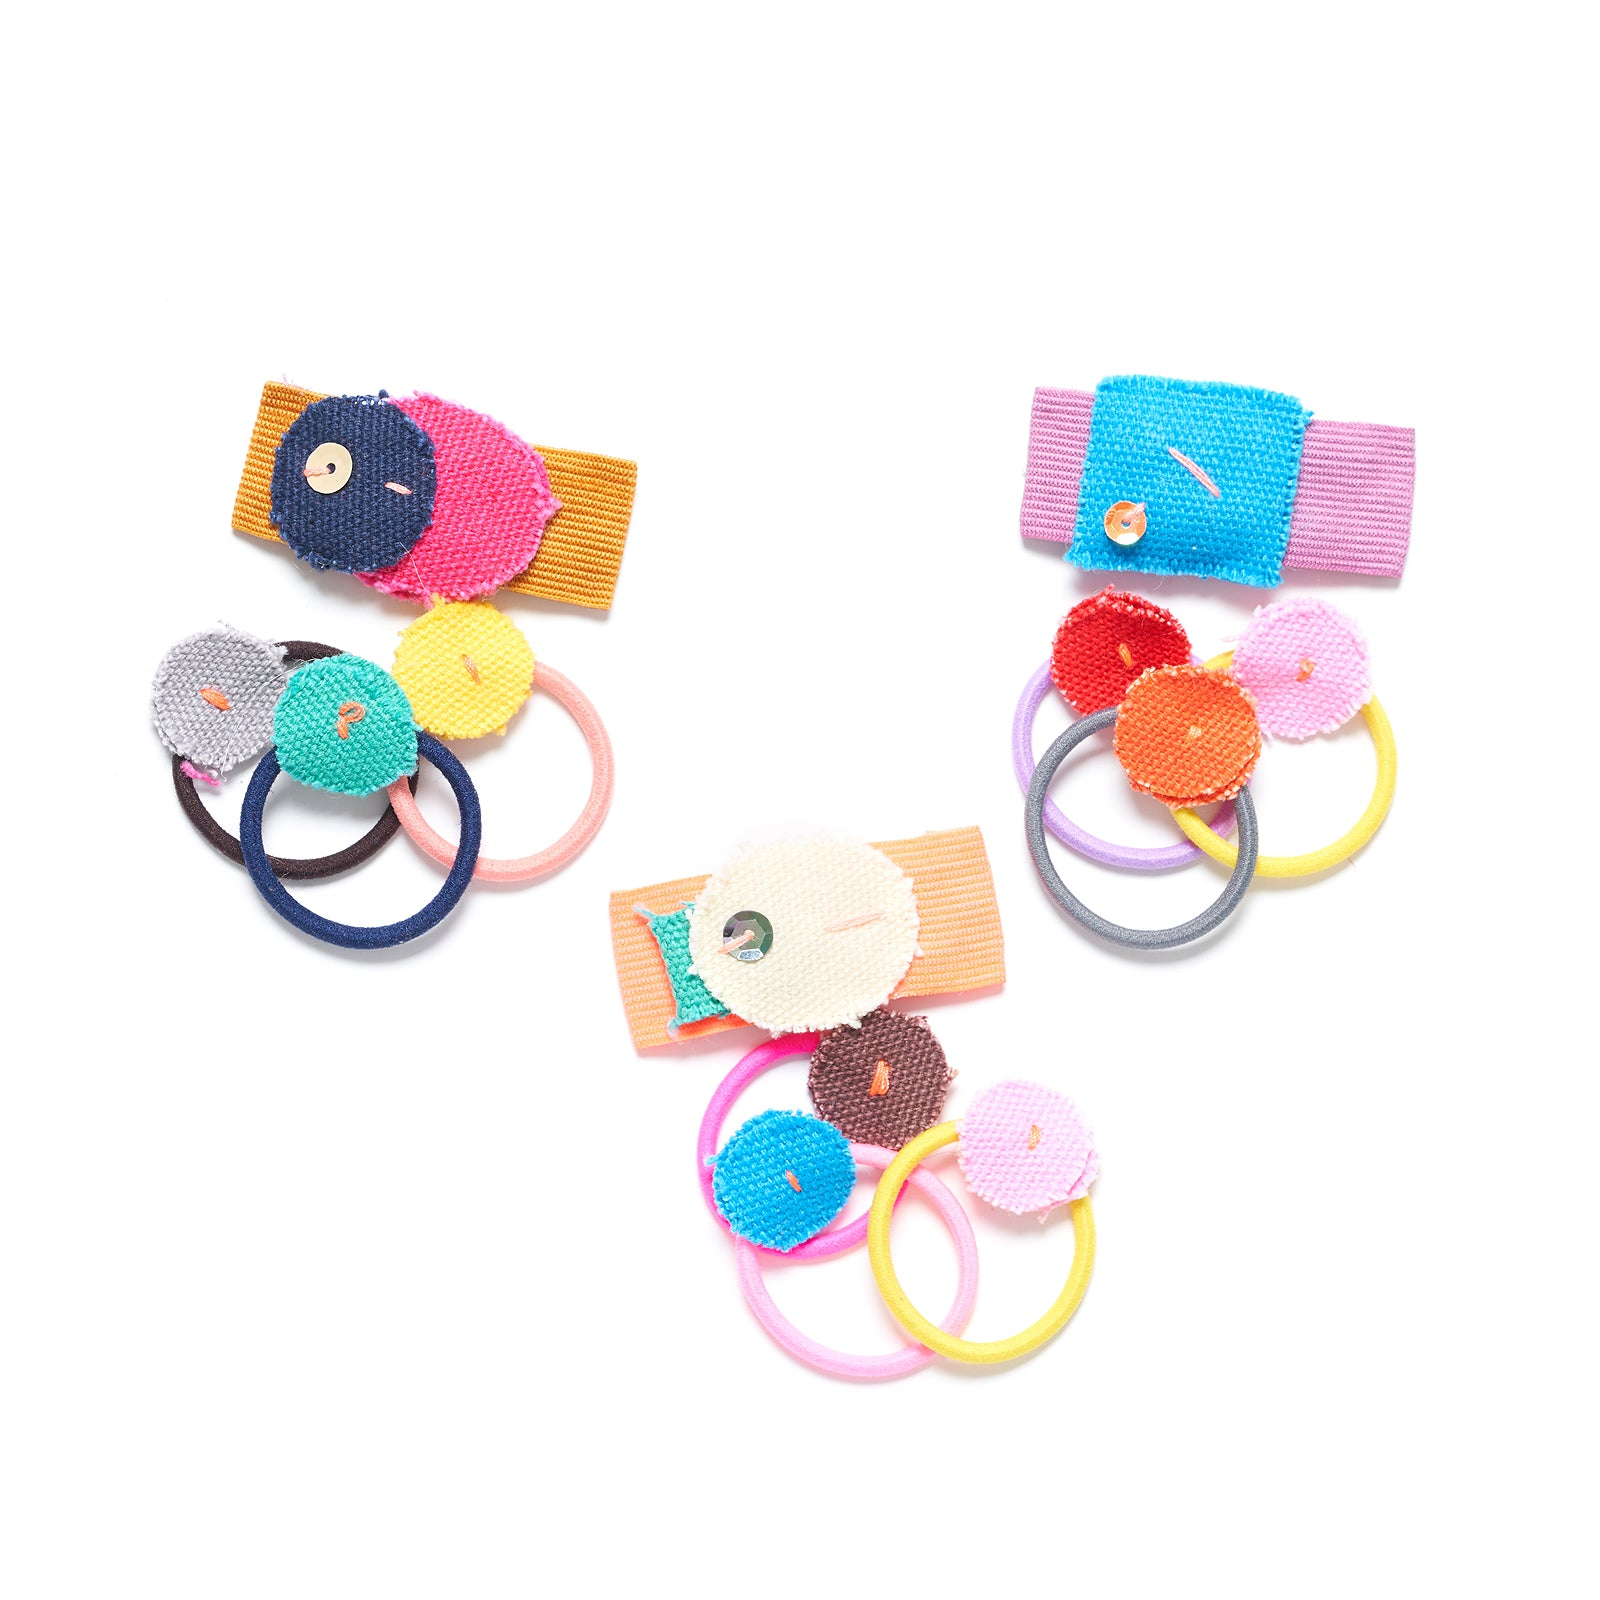 Colorful fabric clip and small hair ties